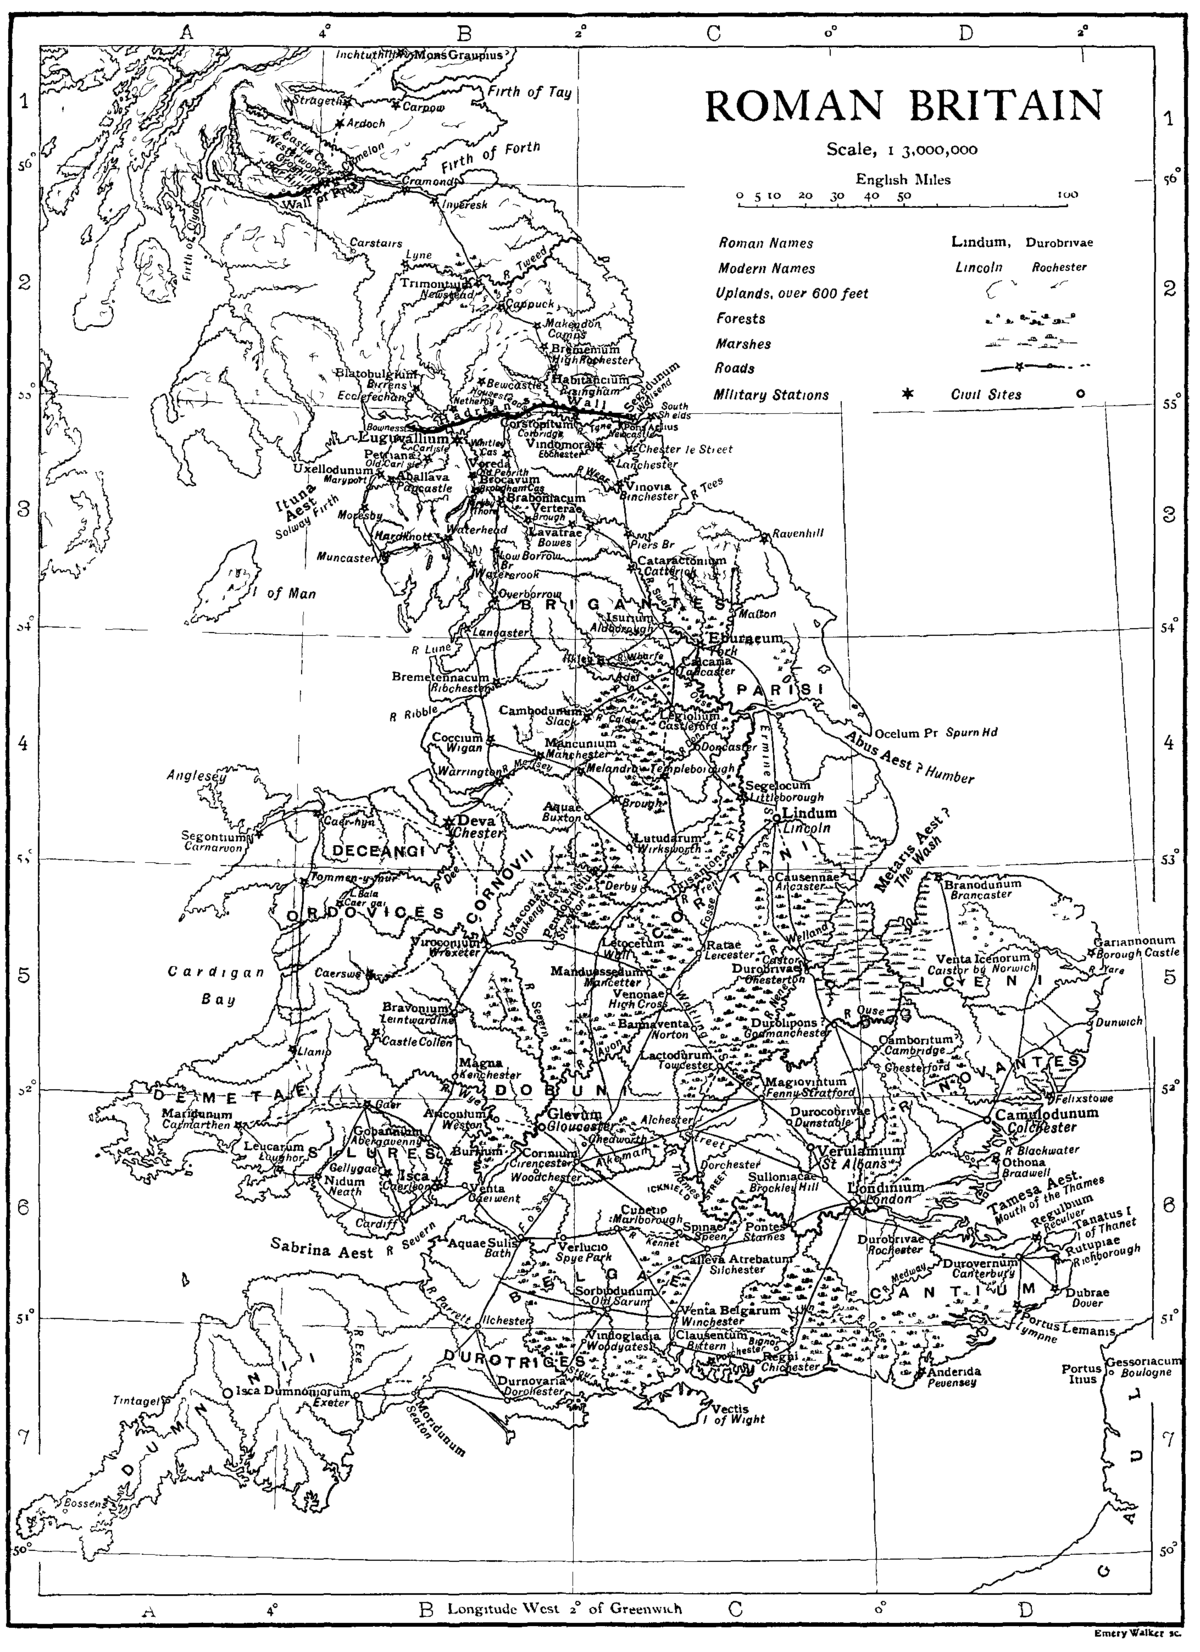 List Of Roman Place Names In Britain Wikipedia